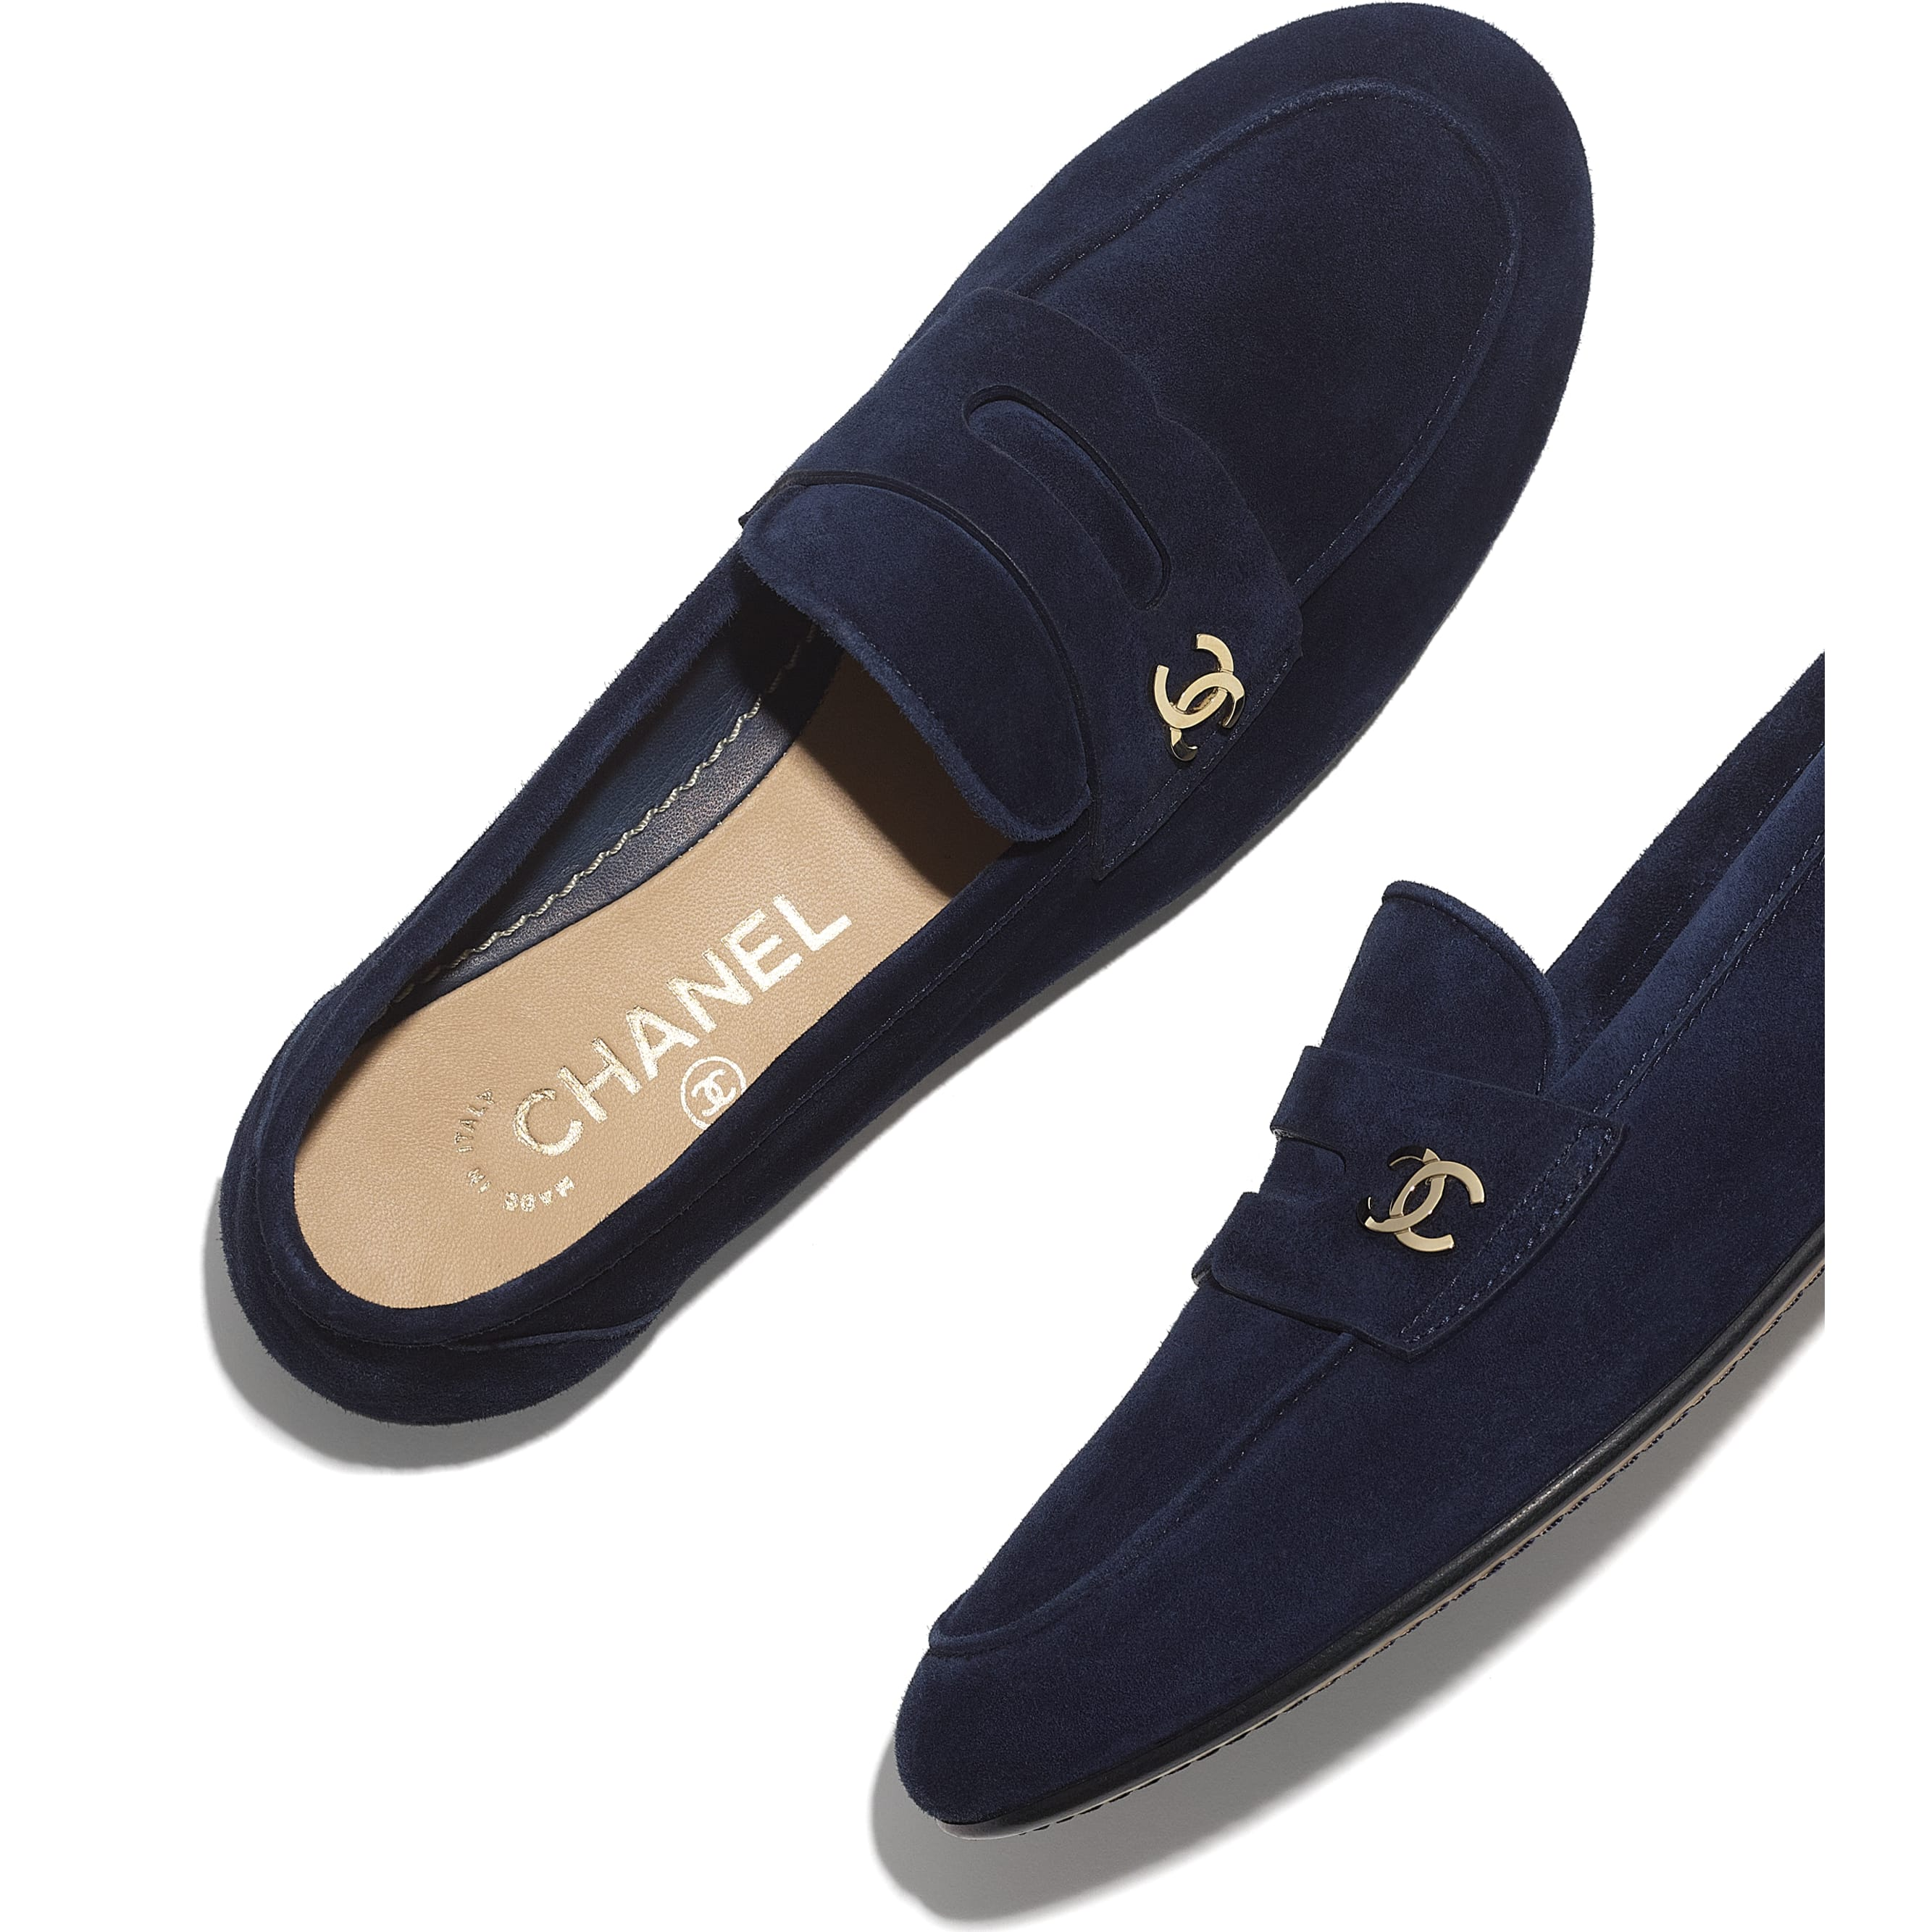 Loafers - Navy Blue - Suede Calfskin - CHANEL - Extra view - see standard sized version